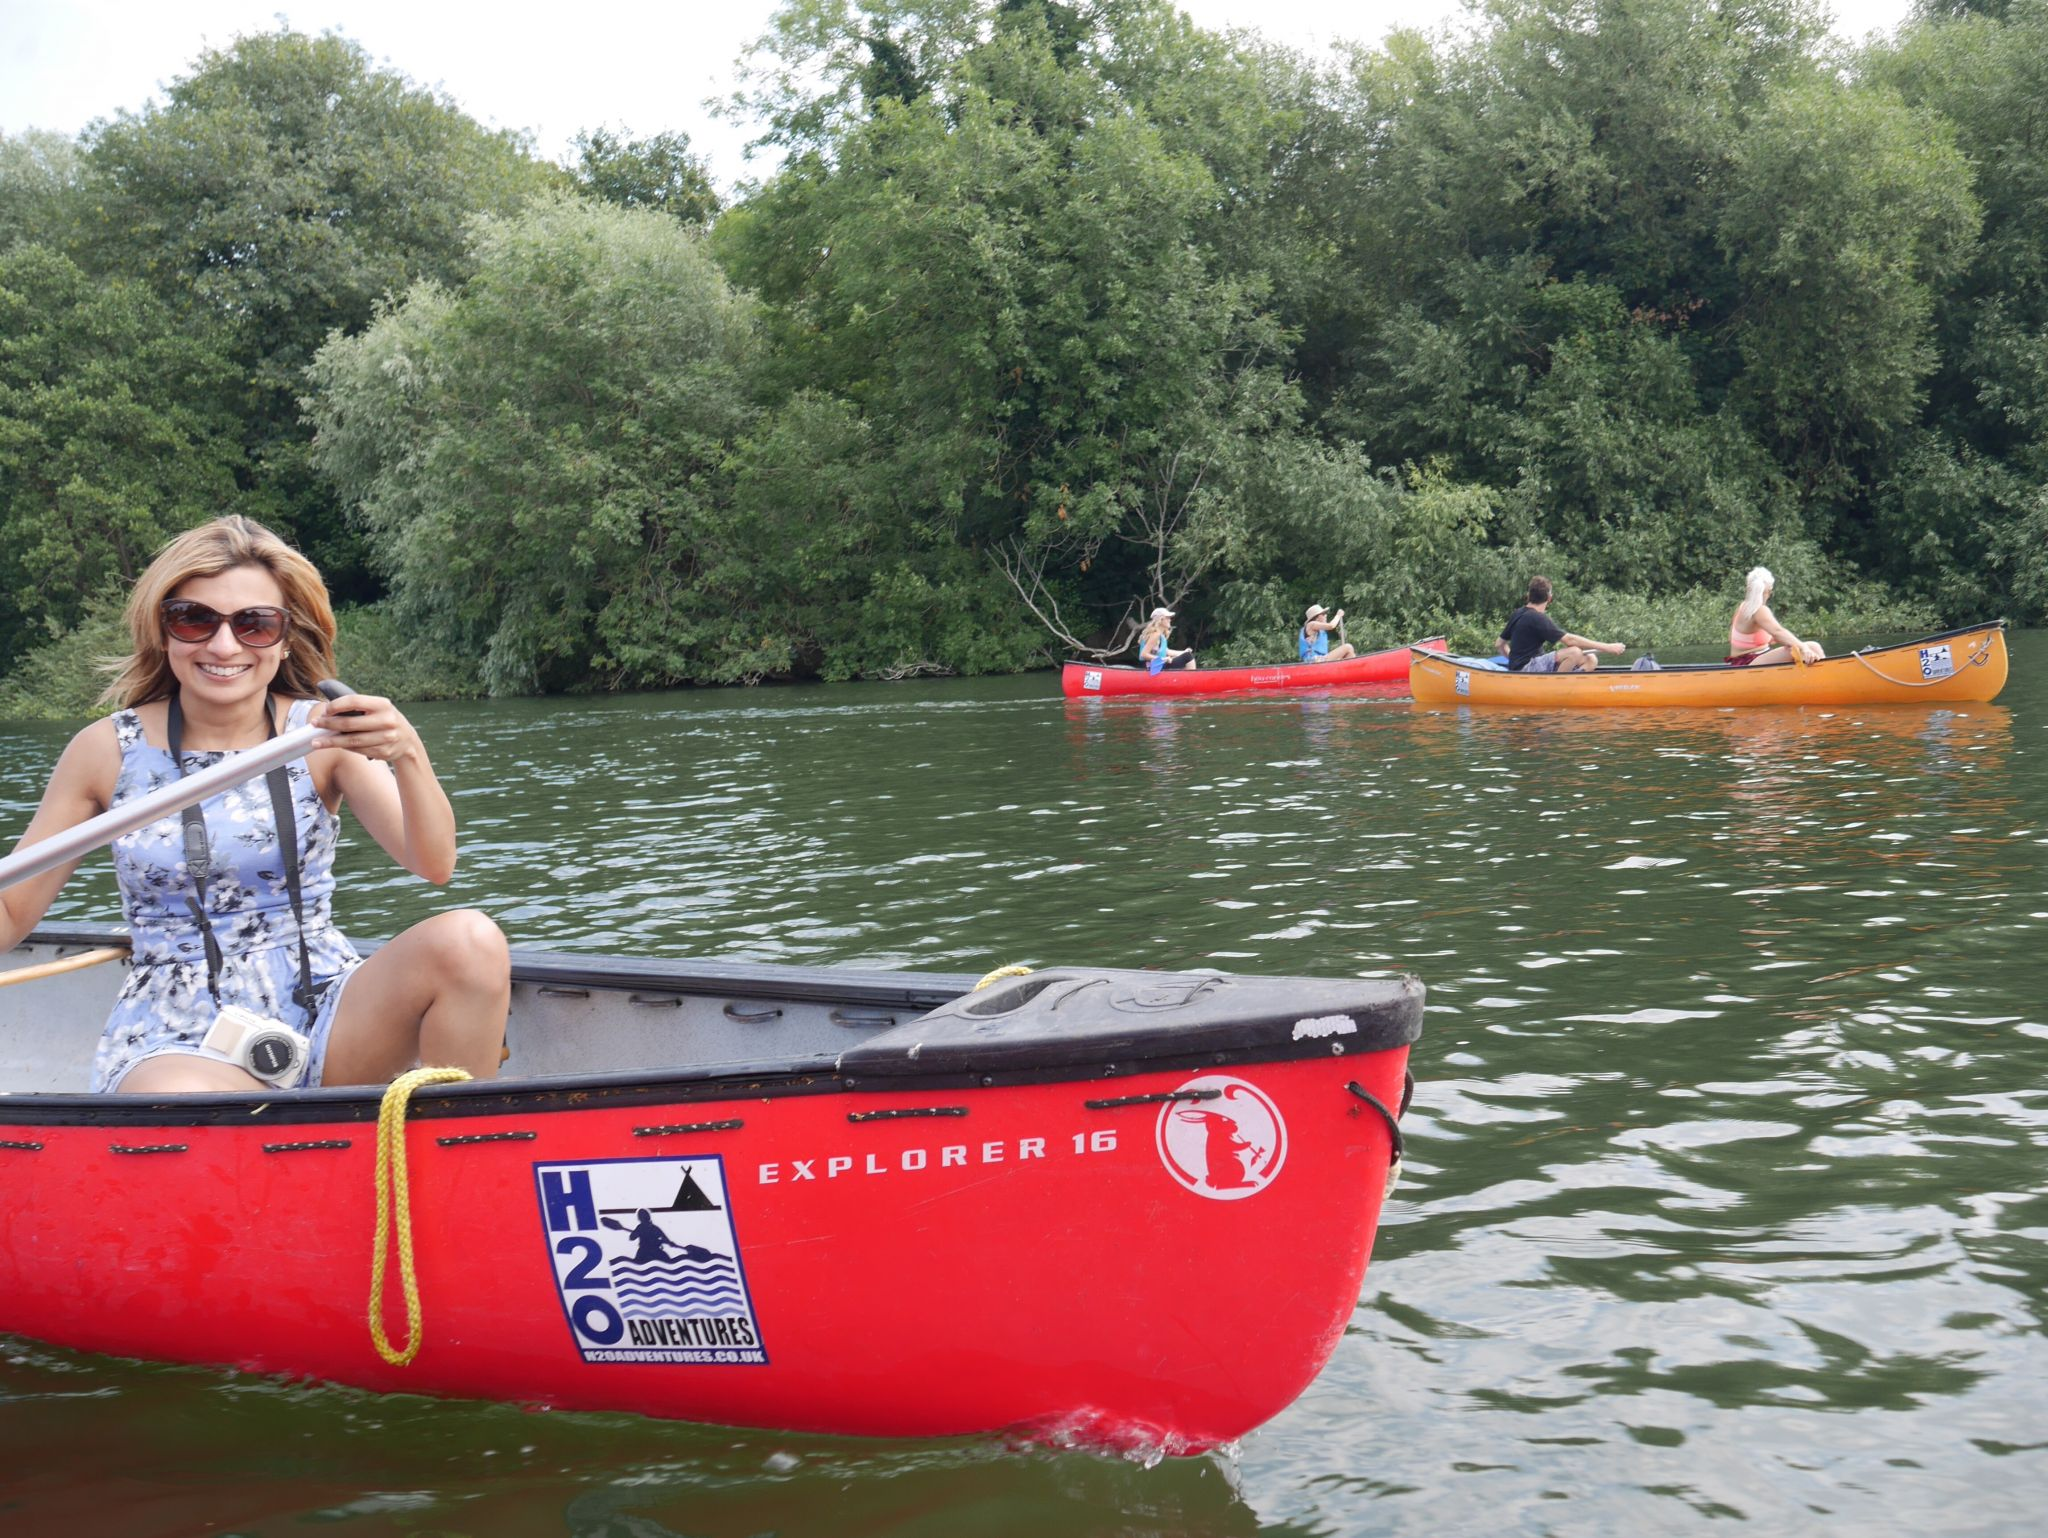 A Canadian Canoe Impulse Adventure on the River Thames with Vespucci Adventures